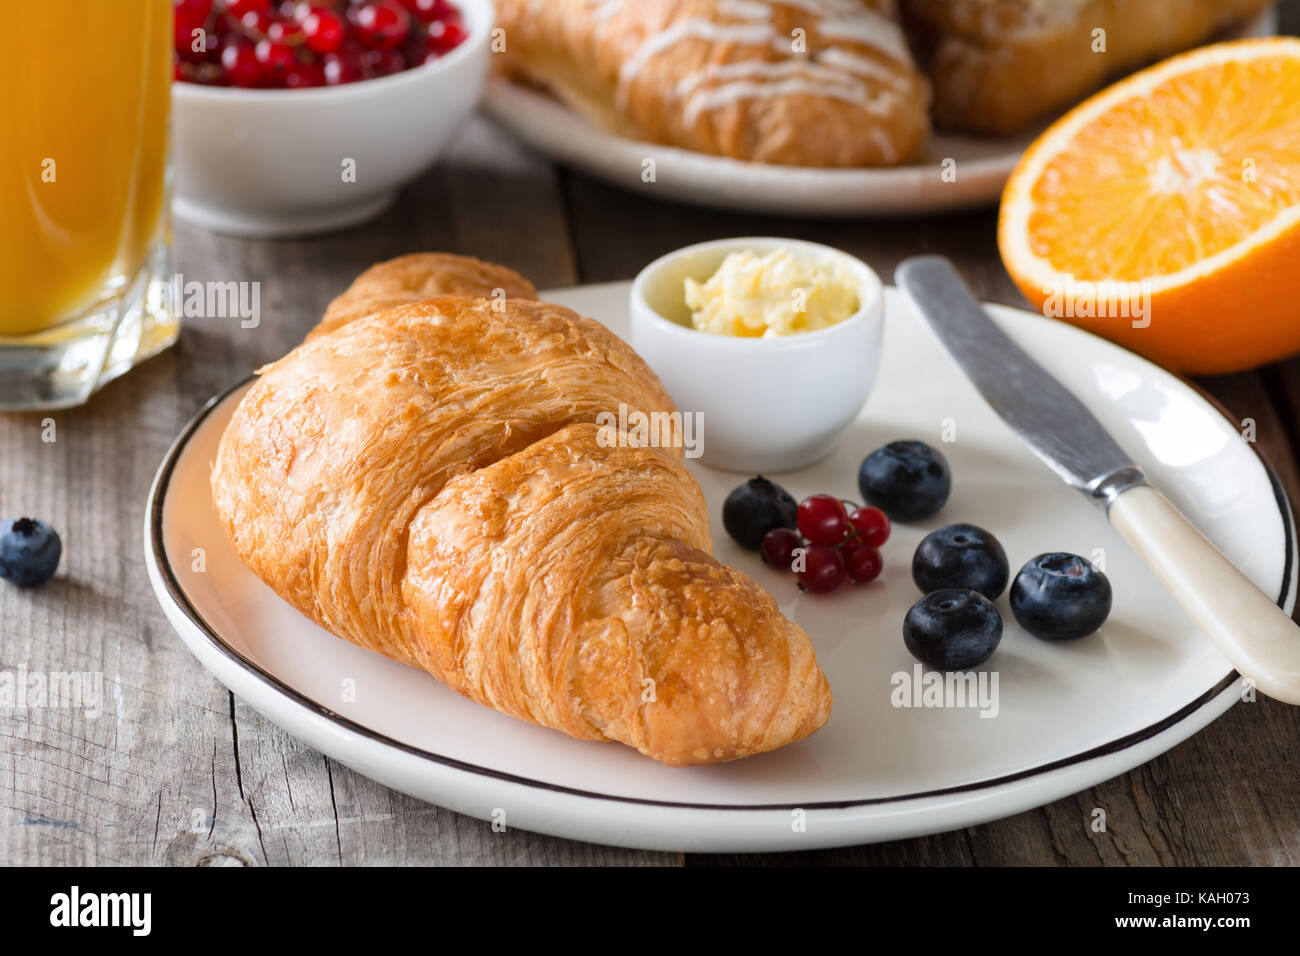 Continental breakfast fresh croissants with butter, glass of orange juice, jam and fruits on wooden table. Closeup - Stock Image